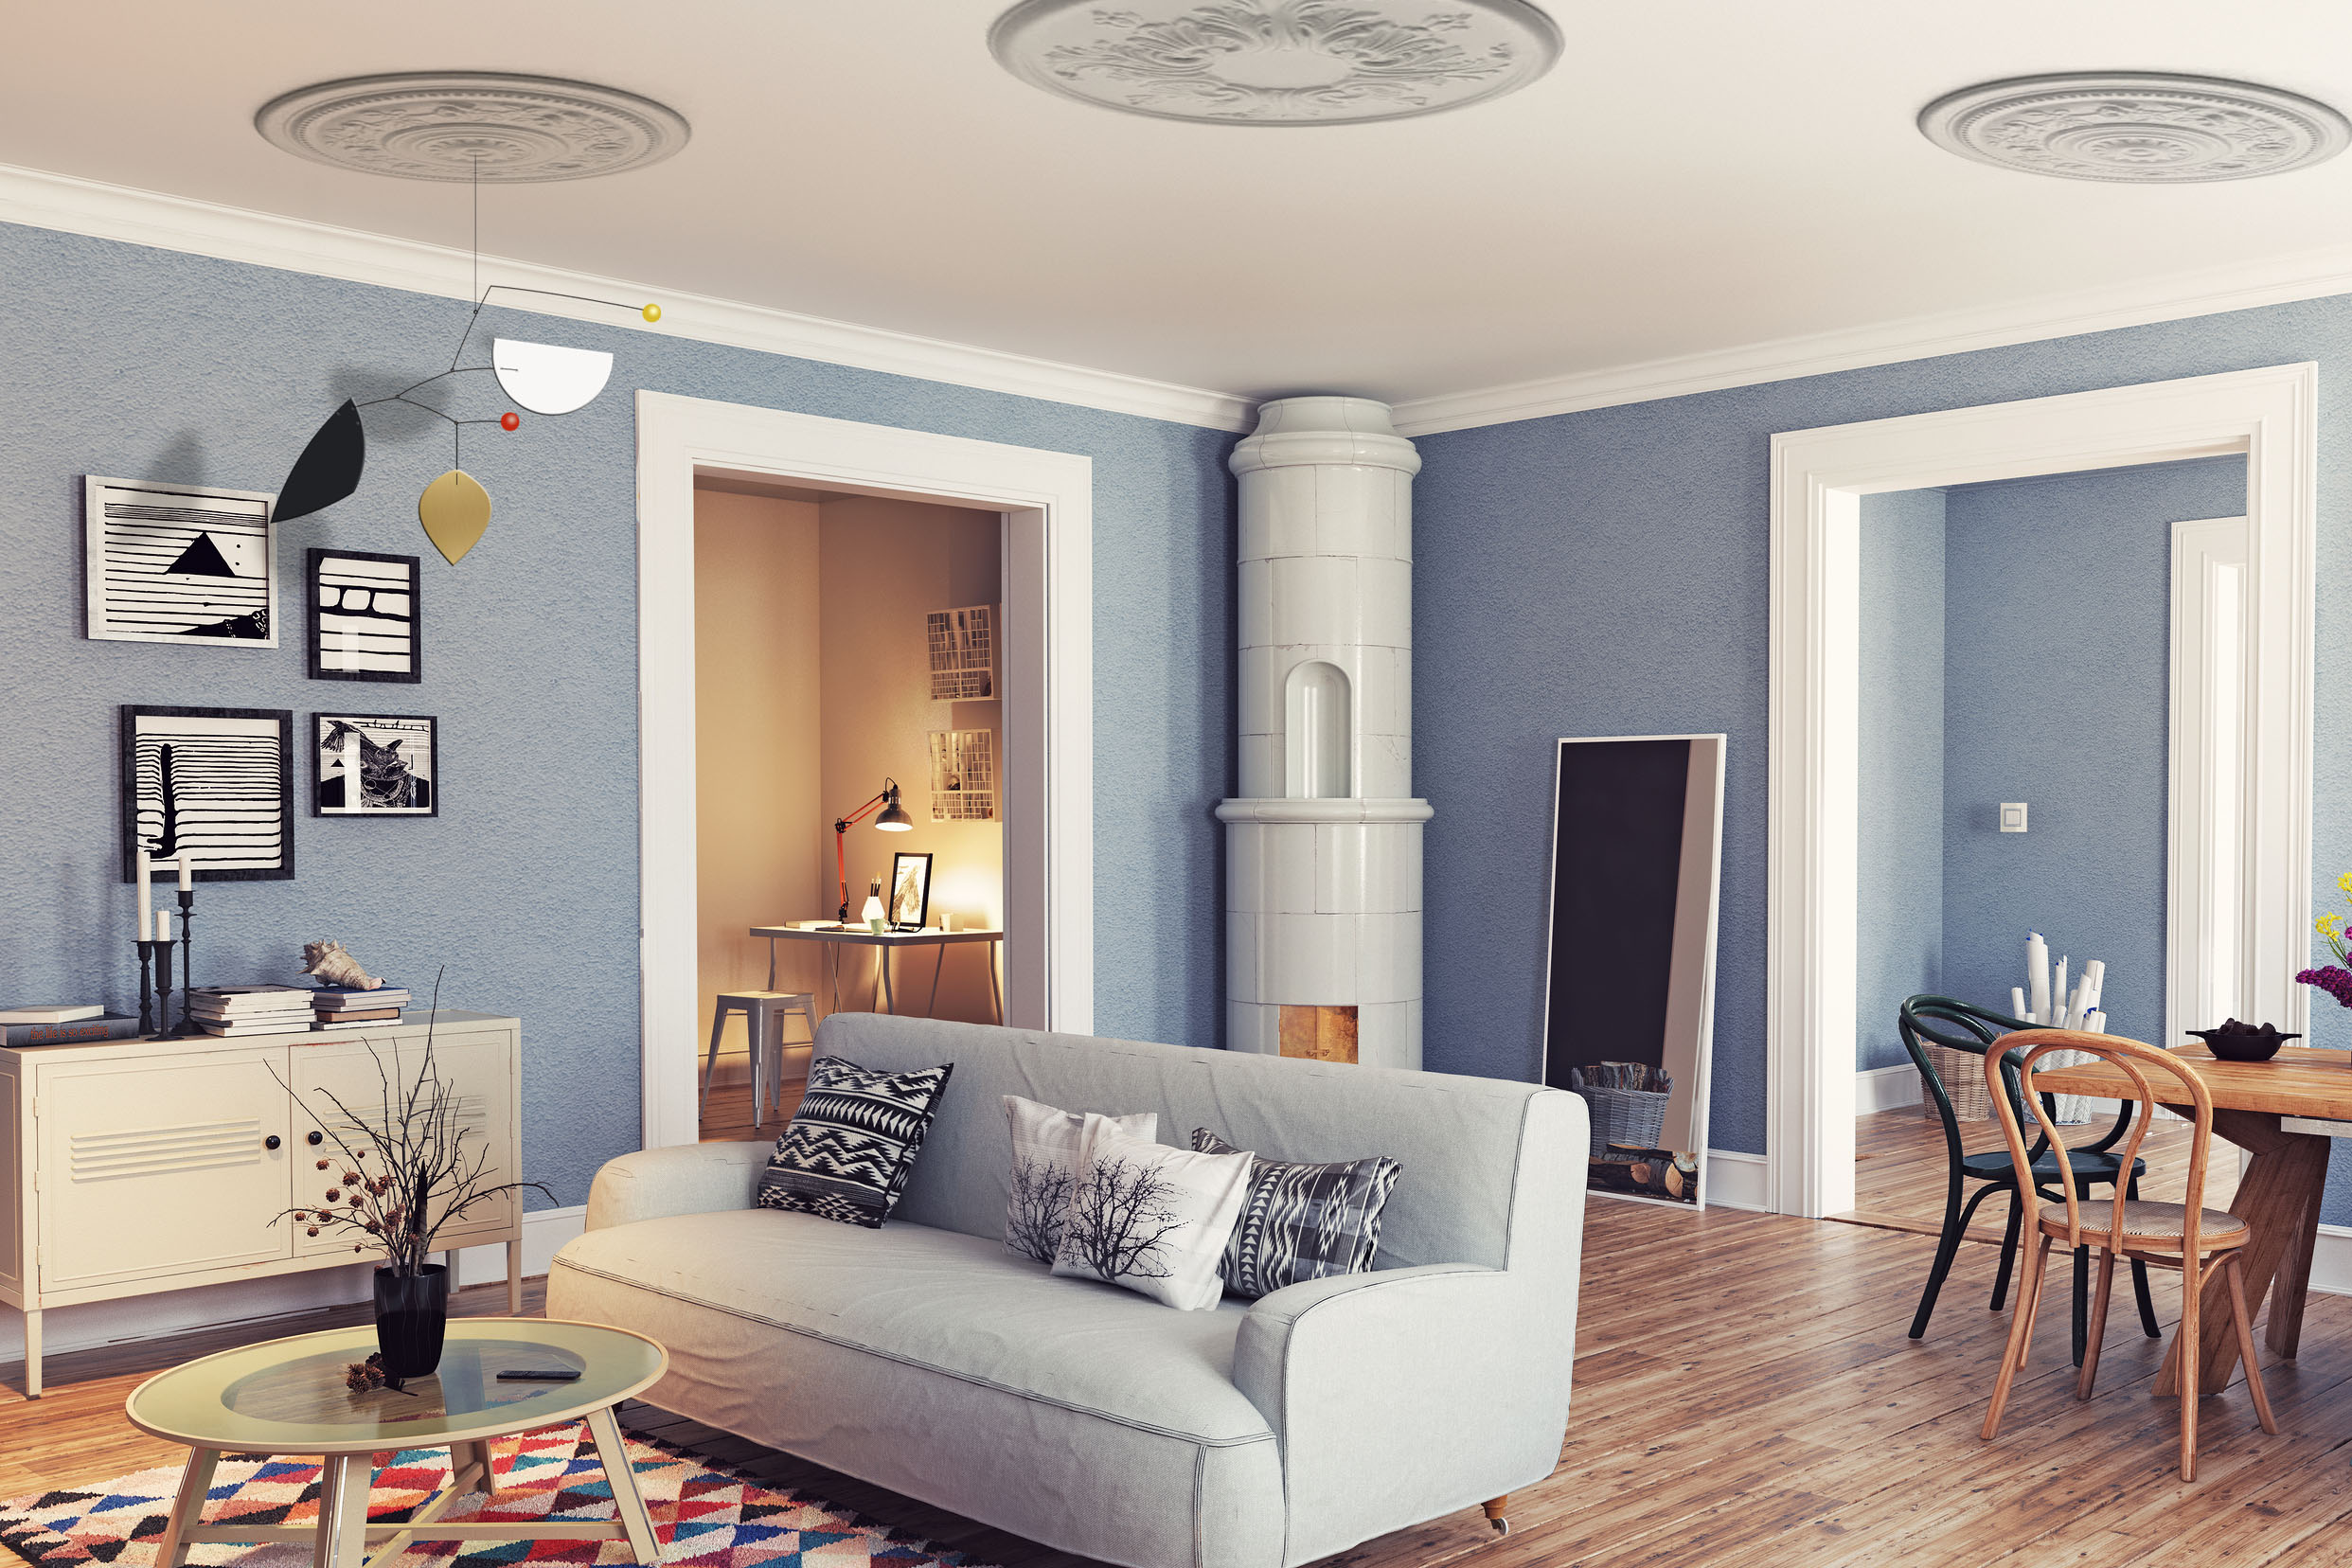 Our 5 Decorative Ideas To Decorate Your Ceiling Virvoltan